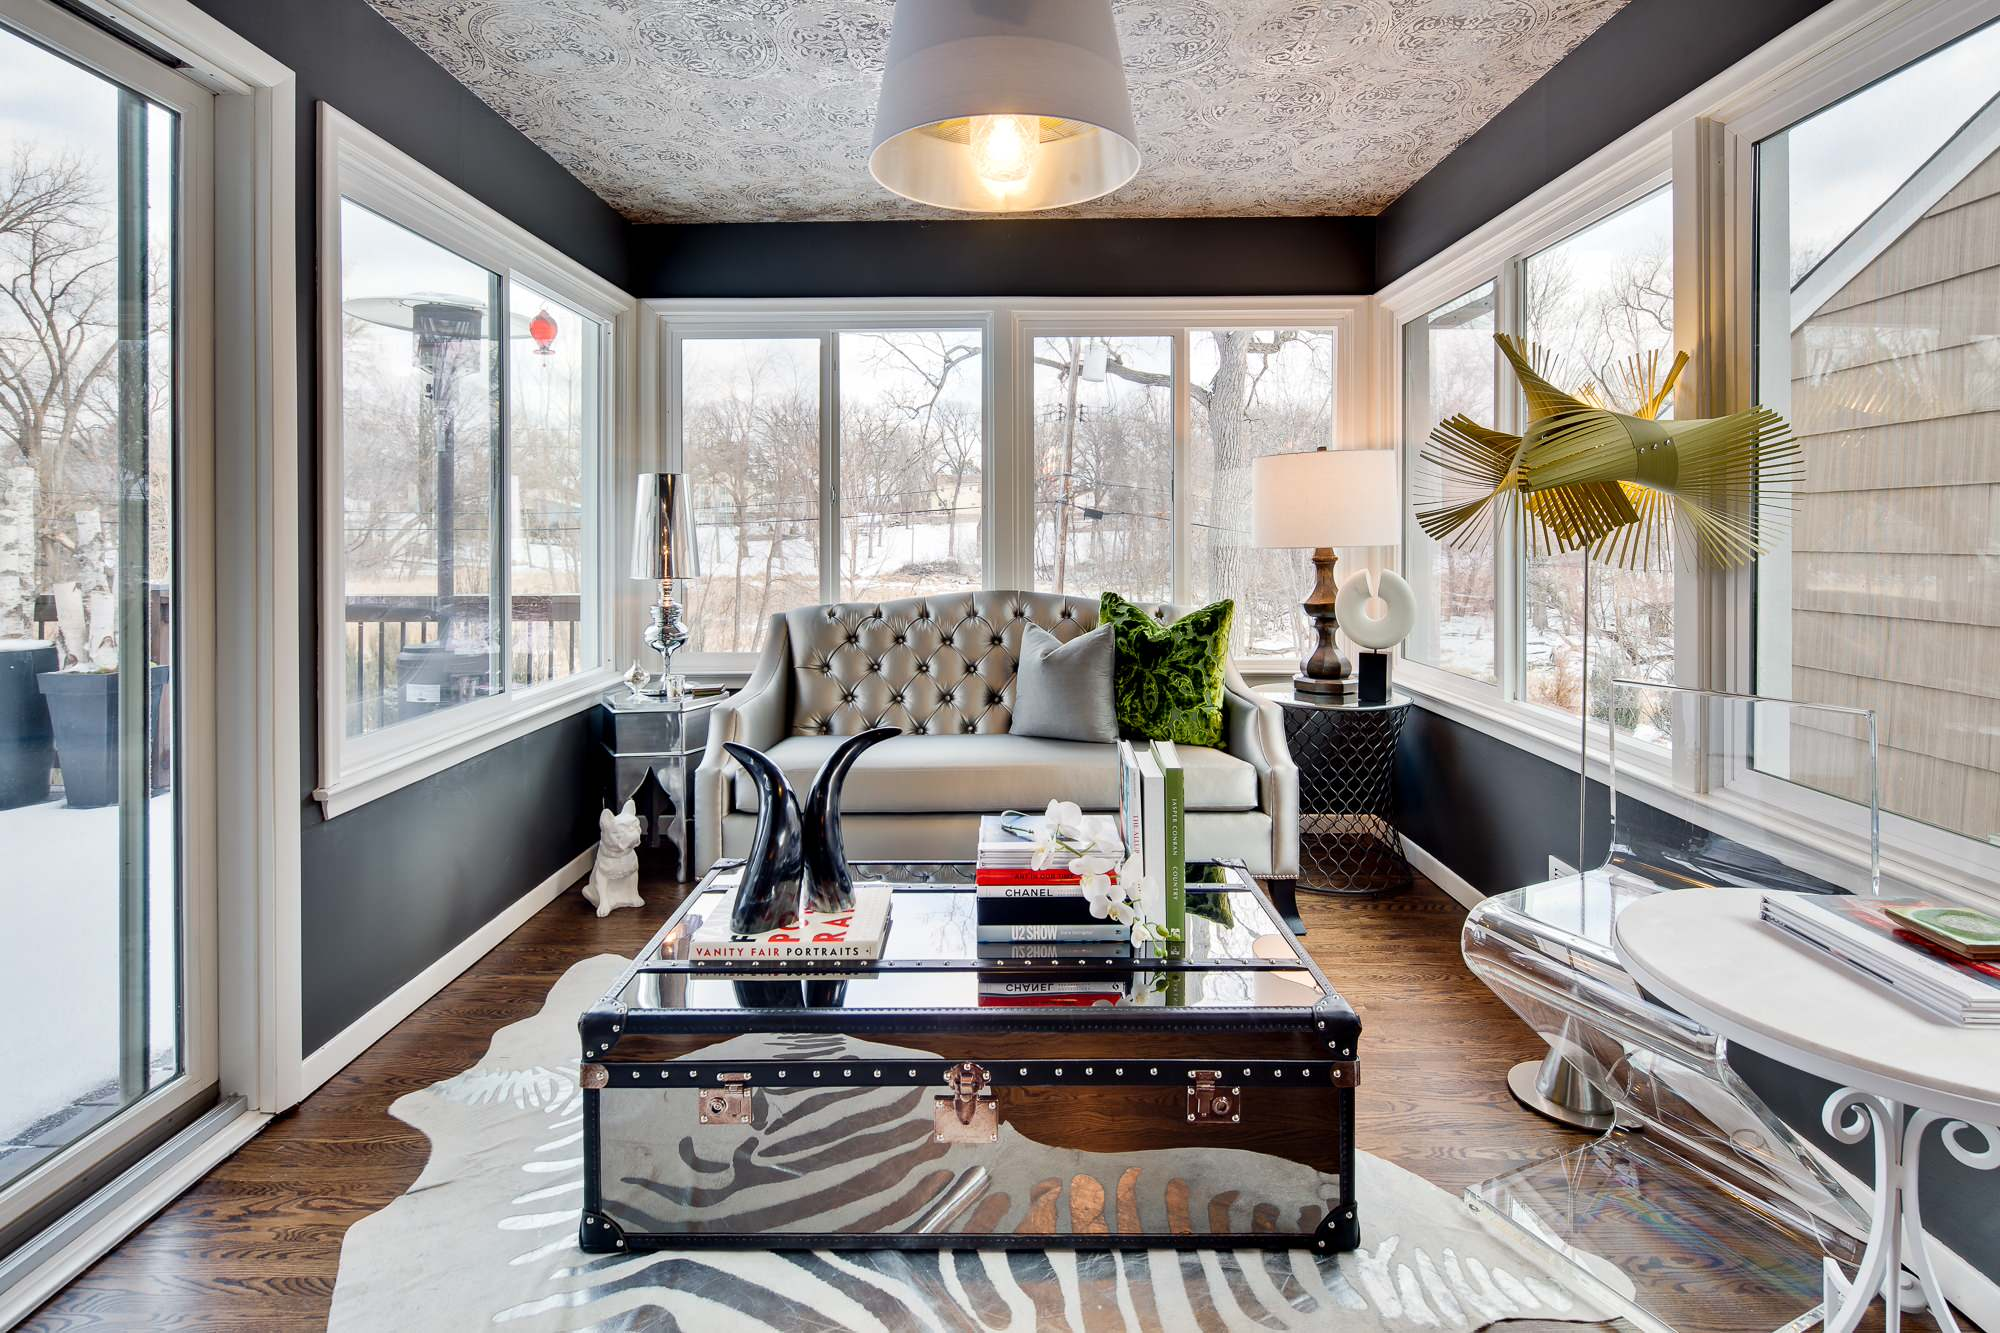 15 Light & Bright Eclectic Sunroom Designs You'll Fall In Love With